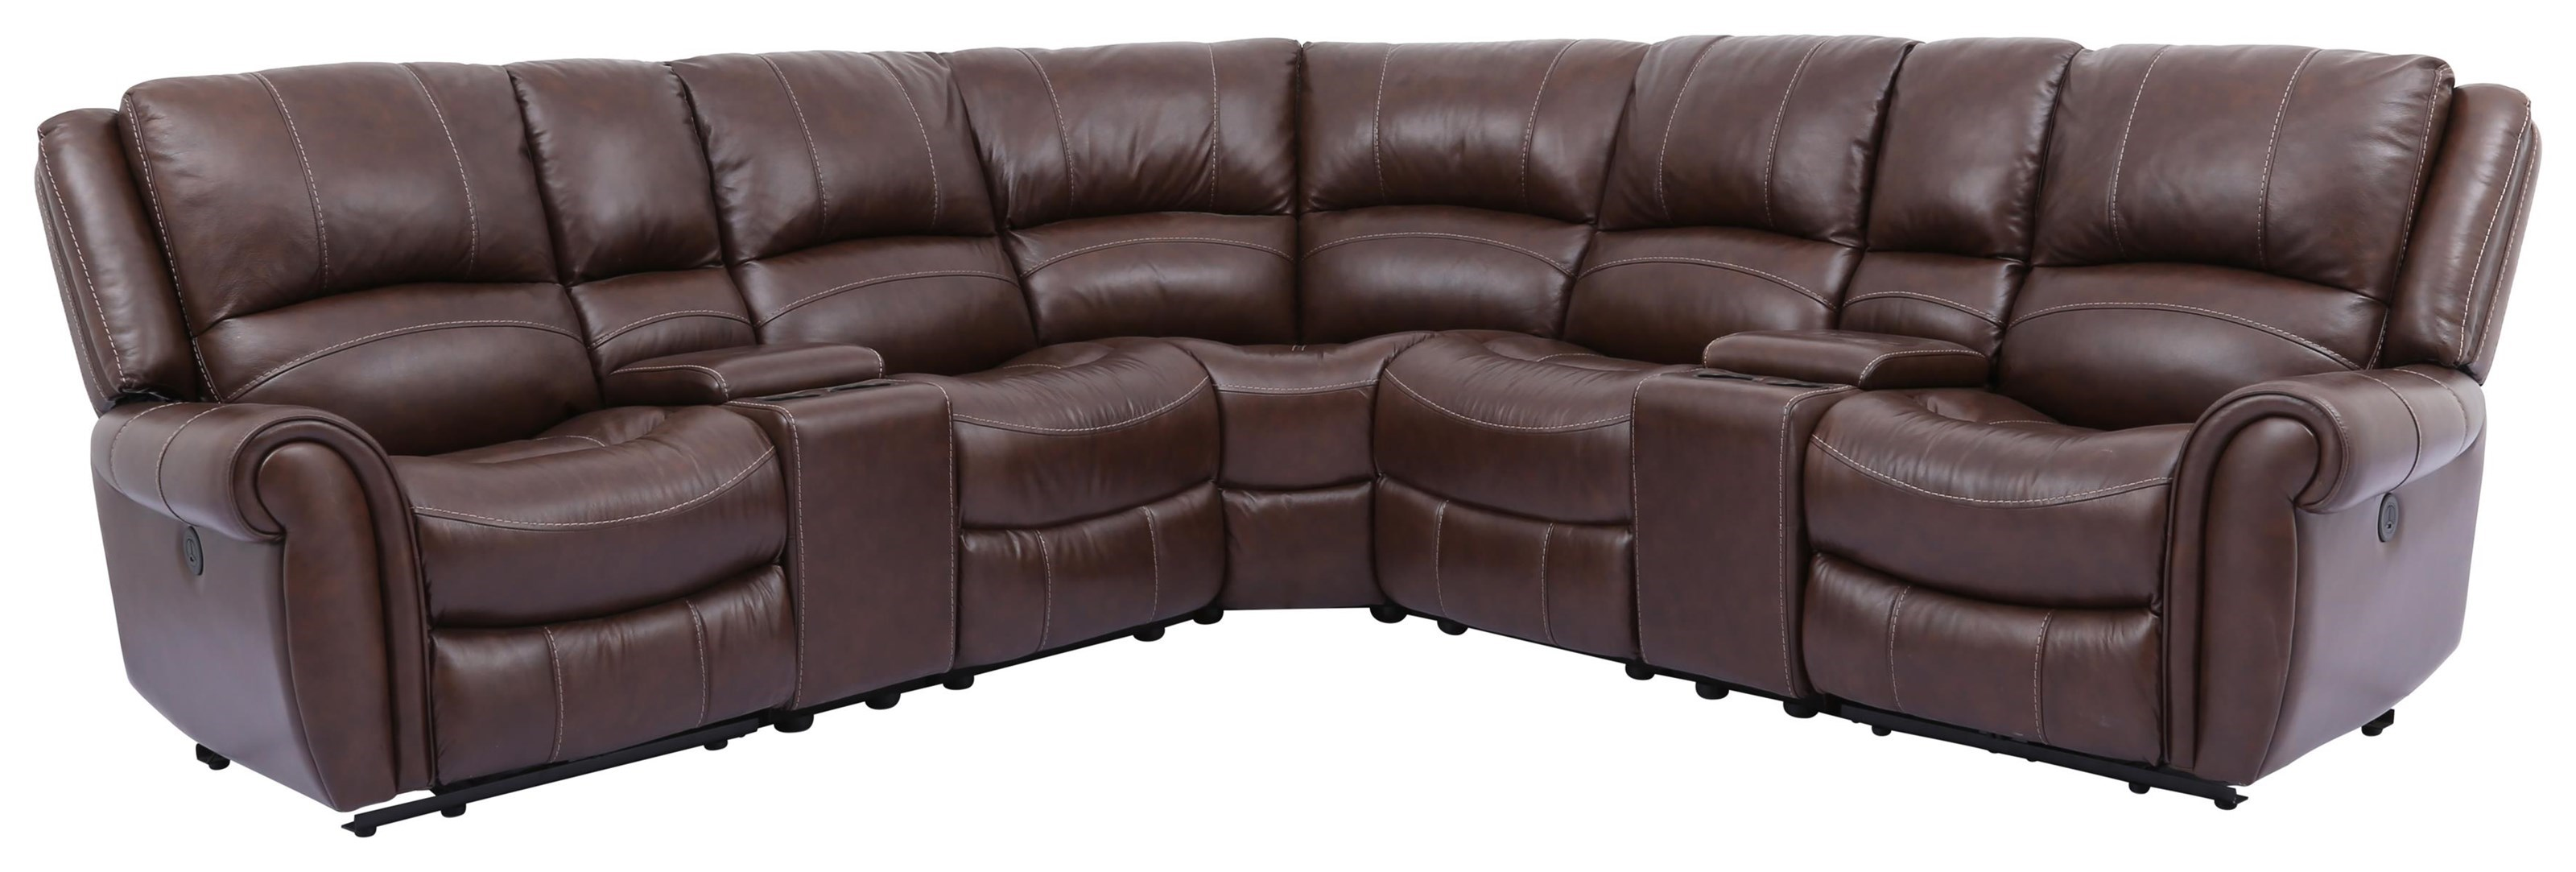 Rowan Leather 7 Piece Power Reclining Sectional